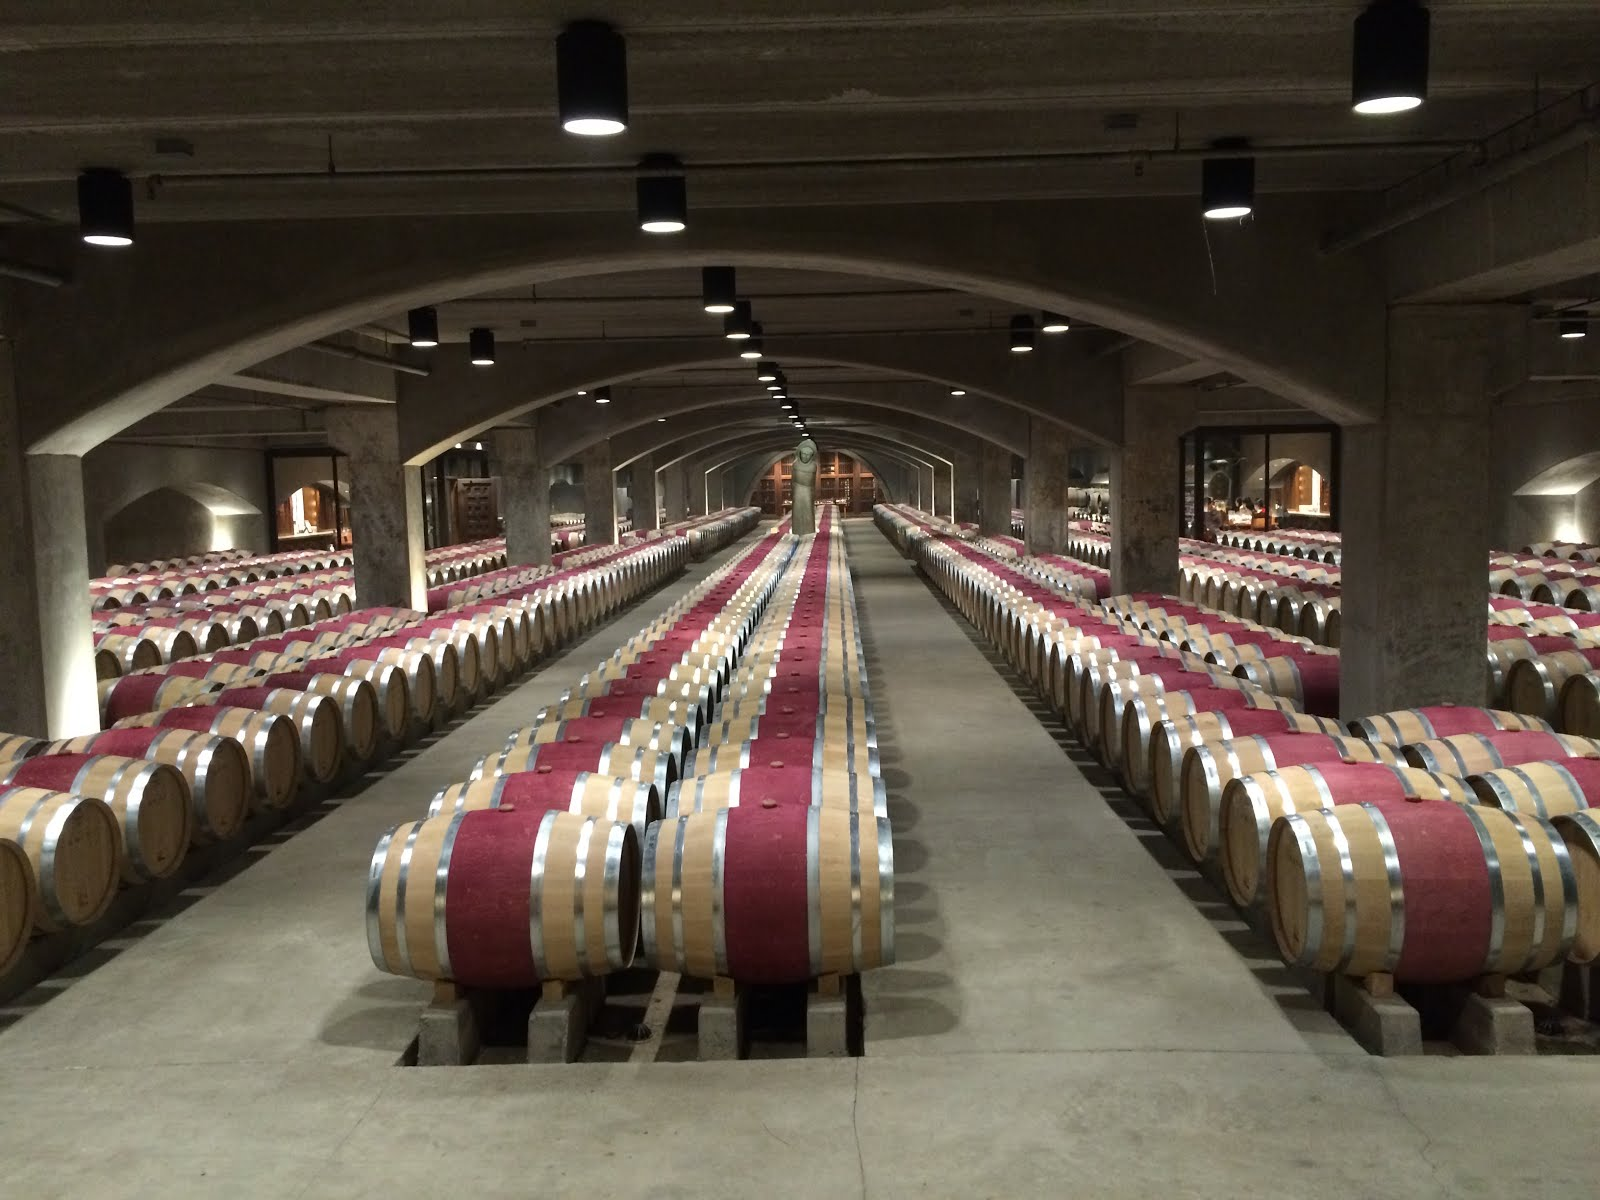 Barrel Room - Napa, California